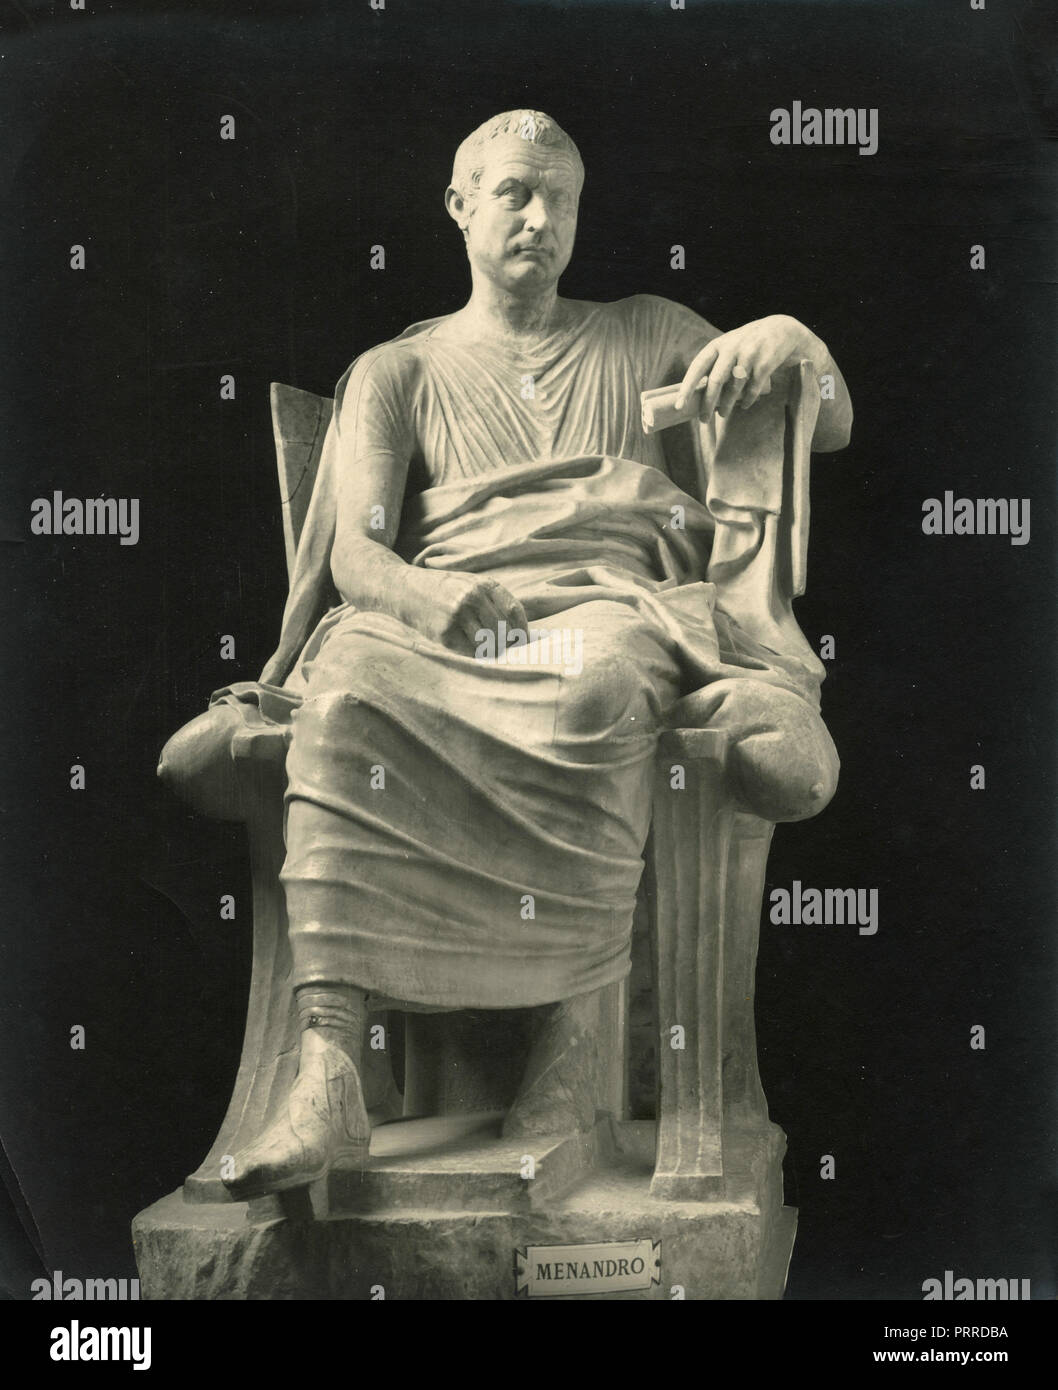 Menander, marble statue, 1910s - Stock Image